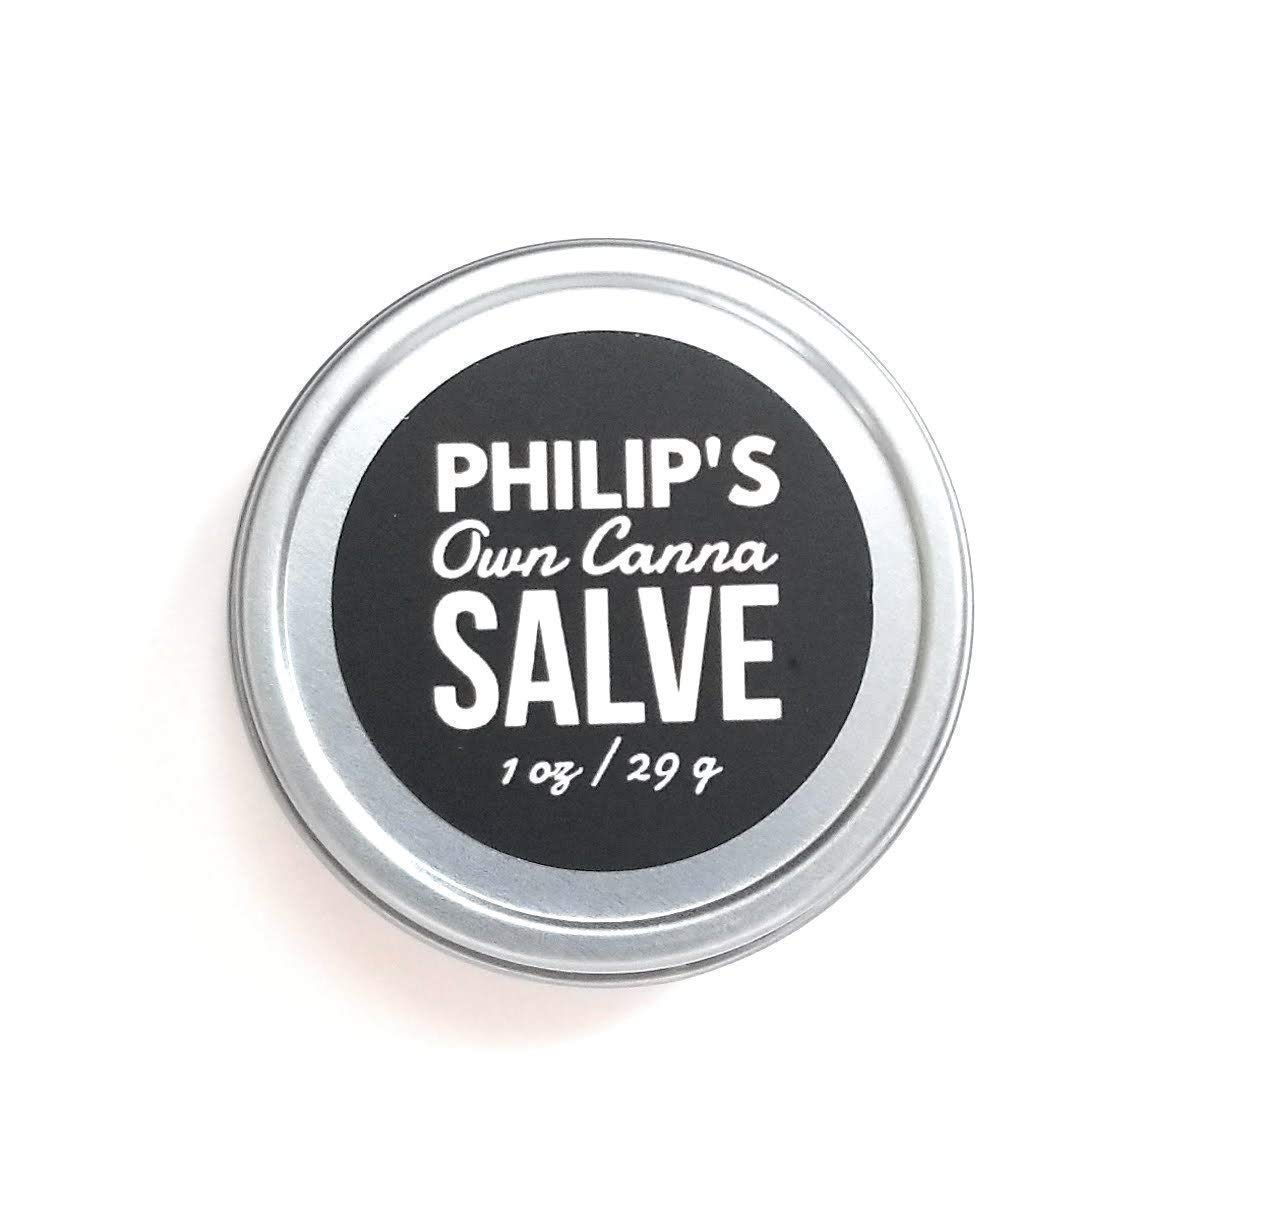 Philip's Own Canna Salve 1 oz / 29 g (Vegan) - Hemp and Tea Tree Oil Balm for Anxiety and Stress Relief - Aromatherapy and Massage Topical Ointment - Tattoo Aftercare for Dry Skin